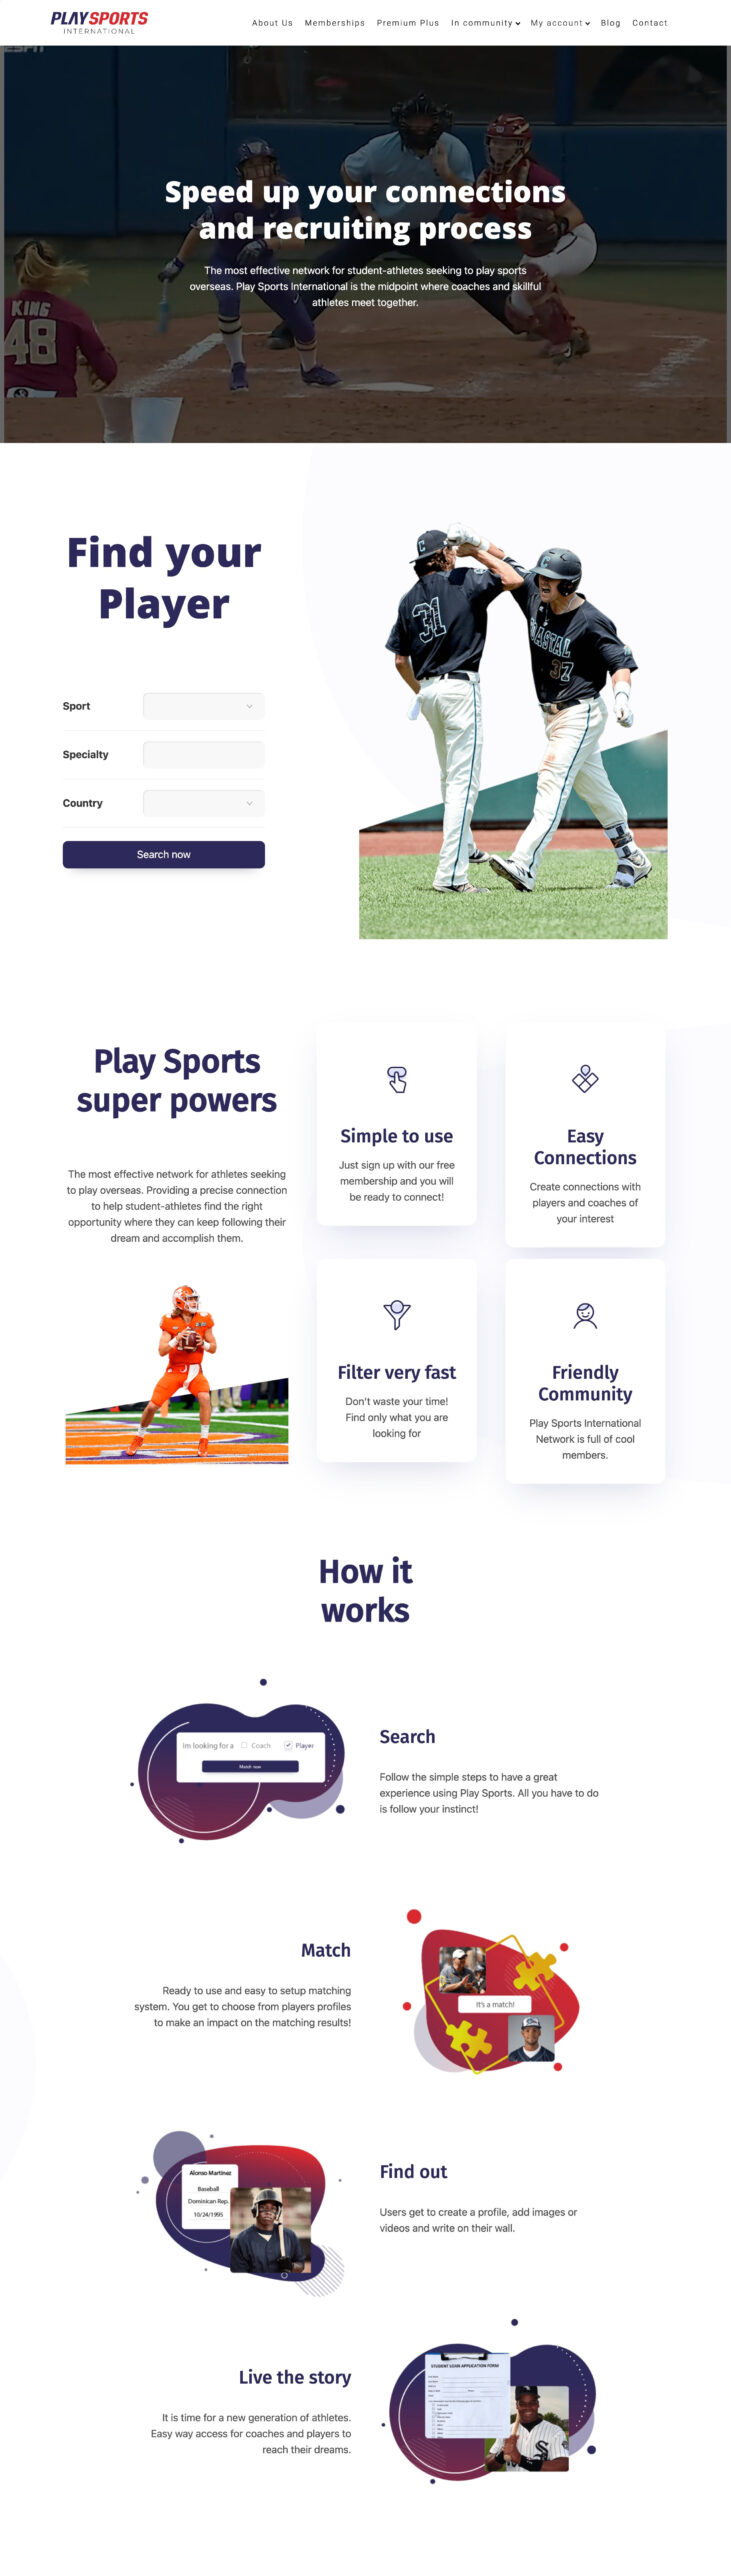 Play Sports International